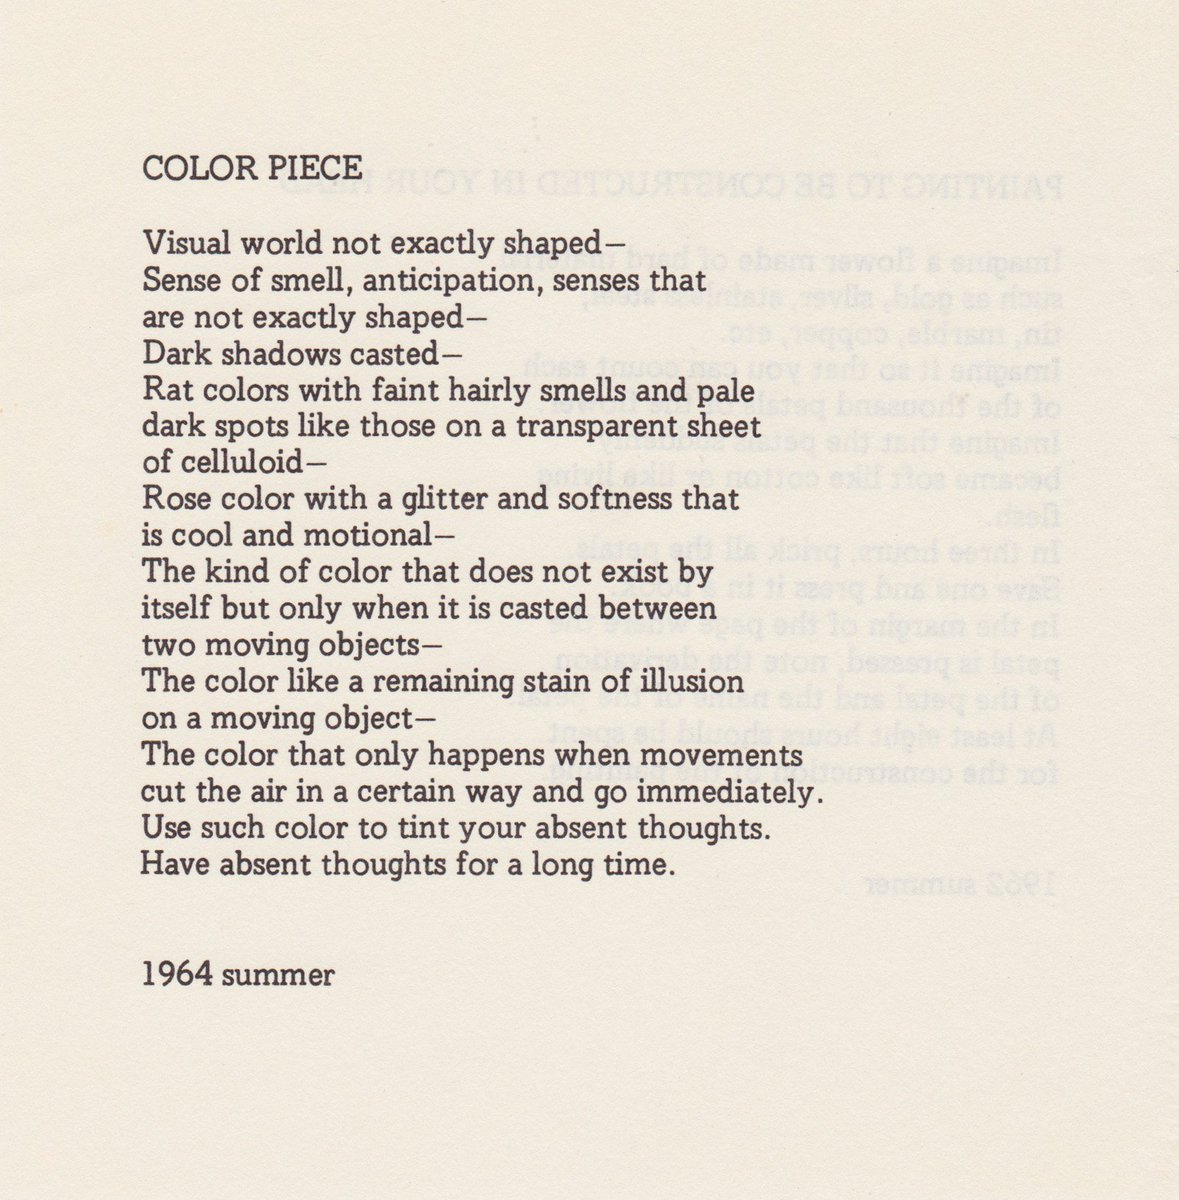 Yoko Ono On Twitter David Garland Has Created An Amazing Musical Soundtrack To My Poem Color Piece From Grapefruit It S The First Track On His New Album Verdancy Available Here Https T Co Qeegkmgk5p Congratulations